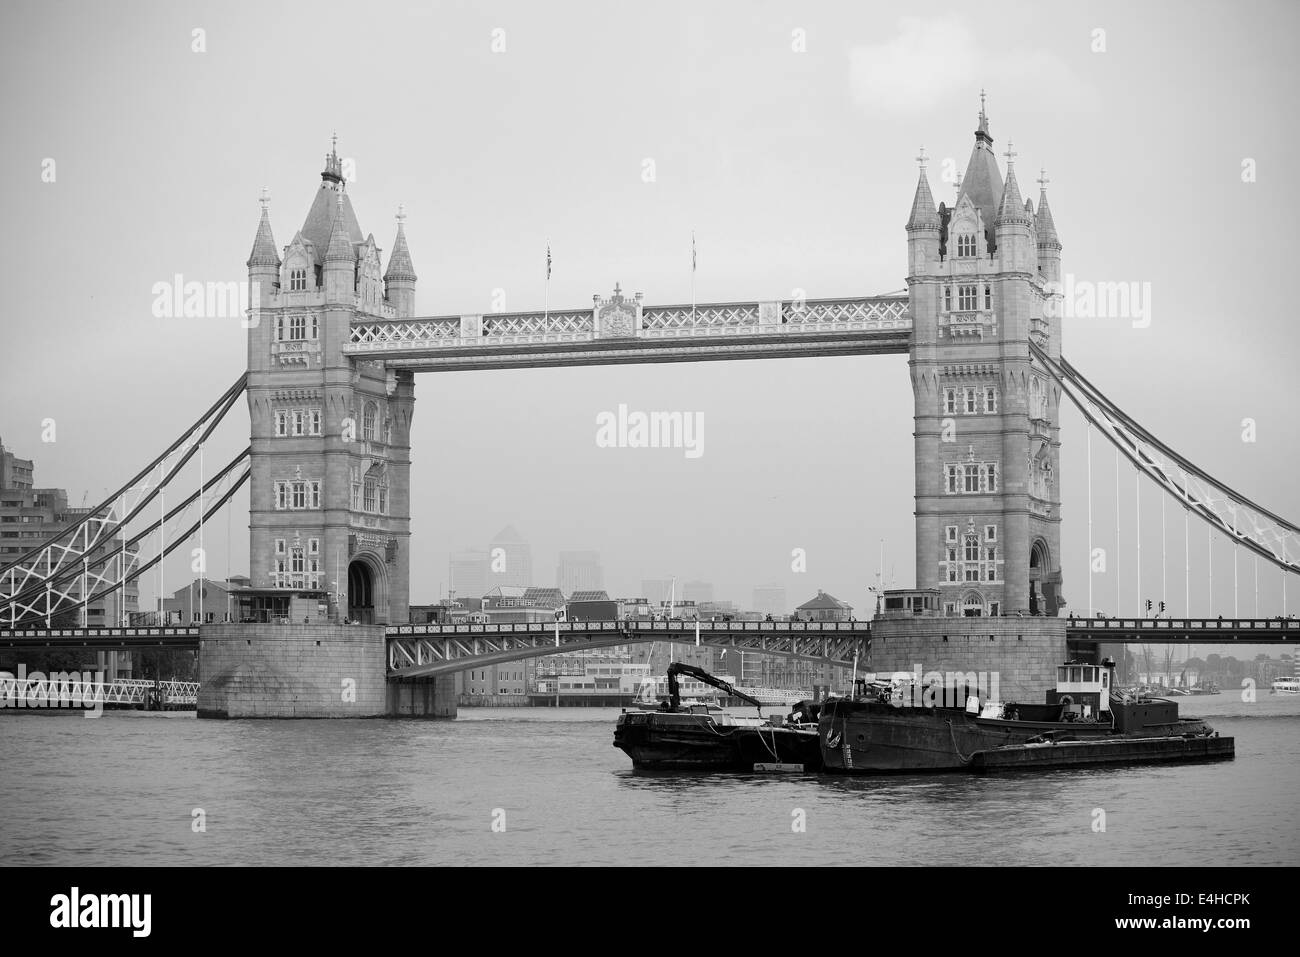 Tower Bridge black and white in London over Thames River as the famous landmark. - Stock Image